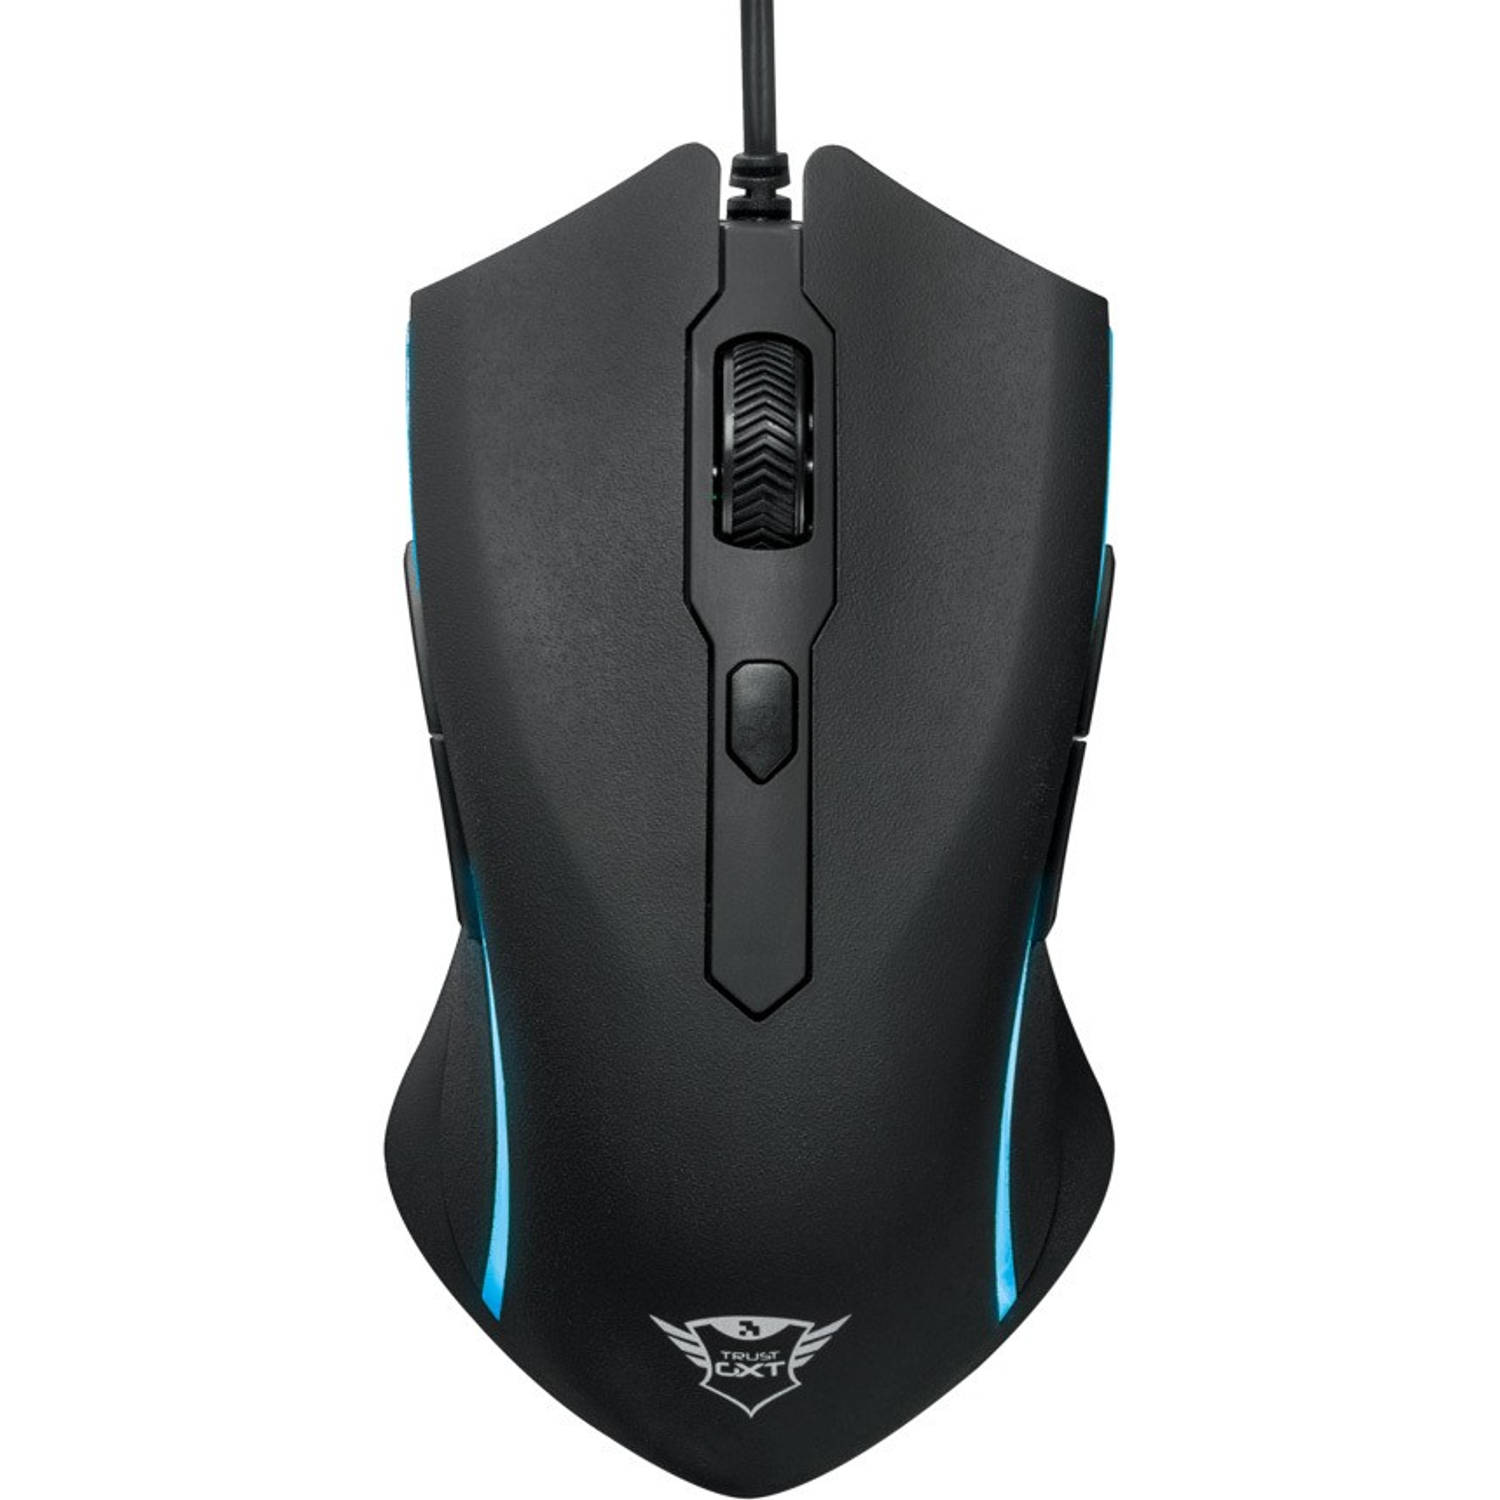 GXT-177 Rivan RGB Gaming Mouse